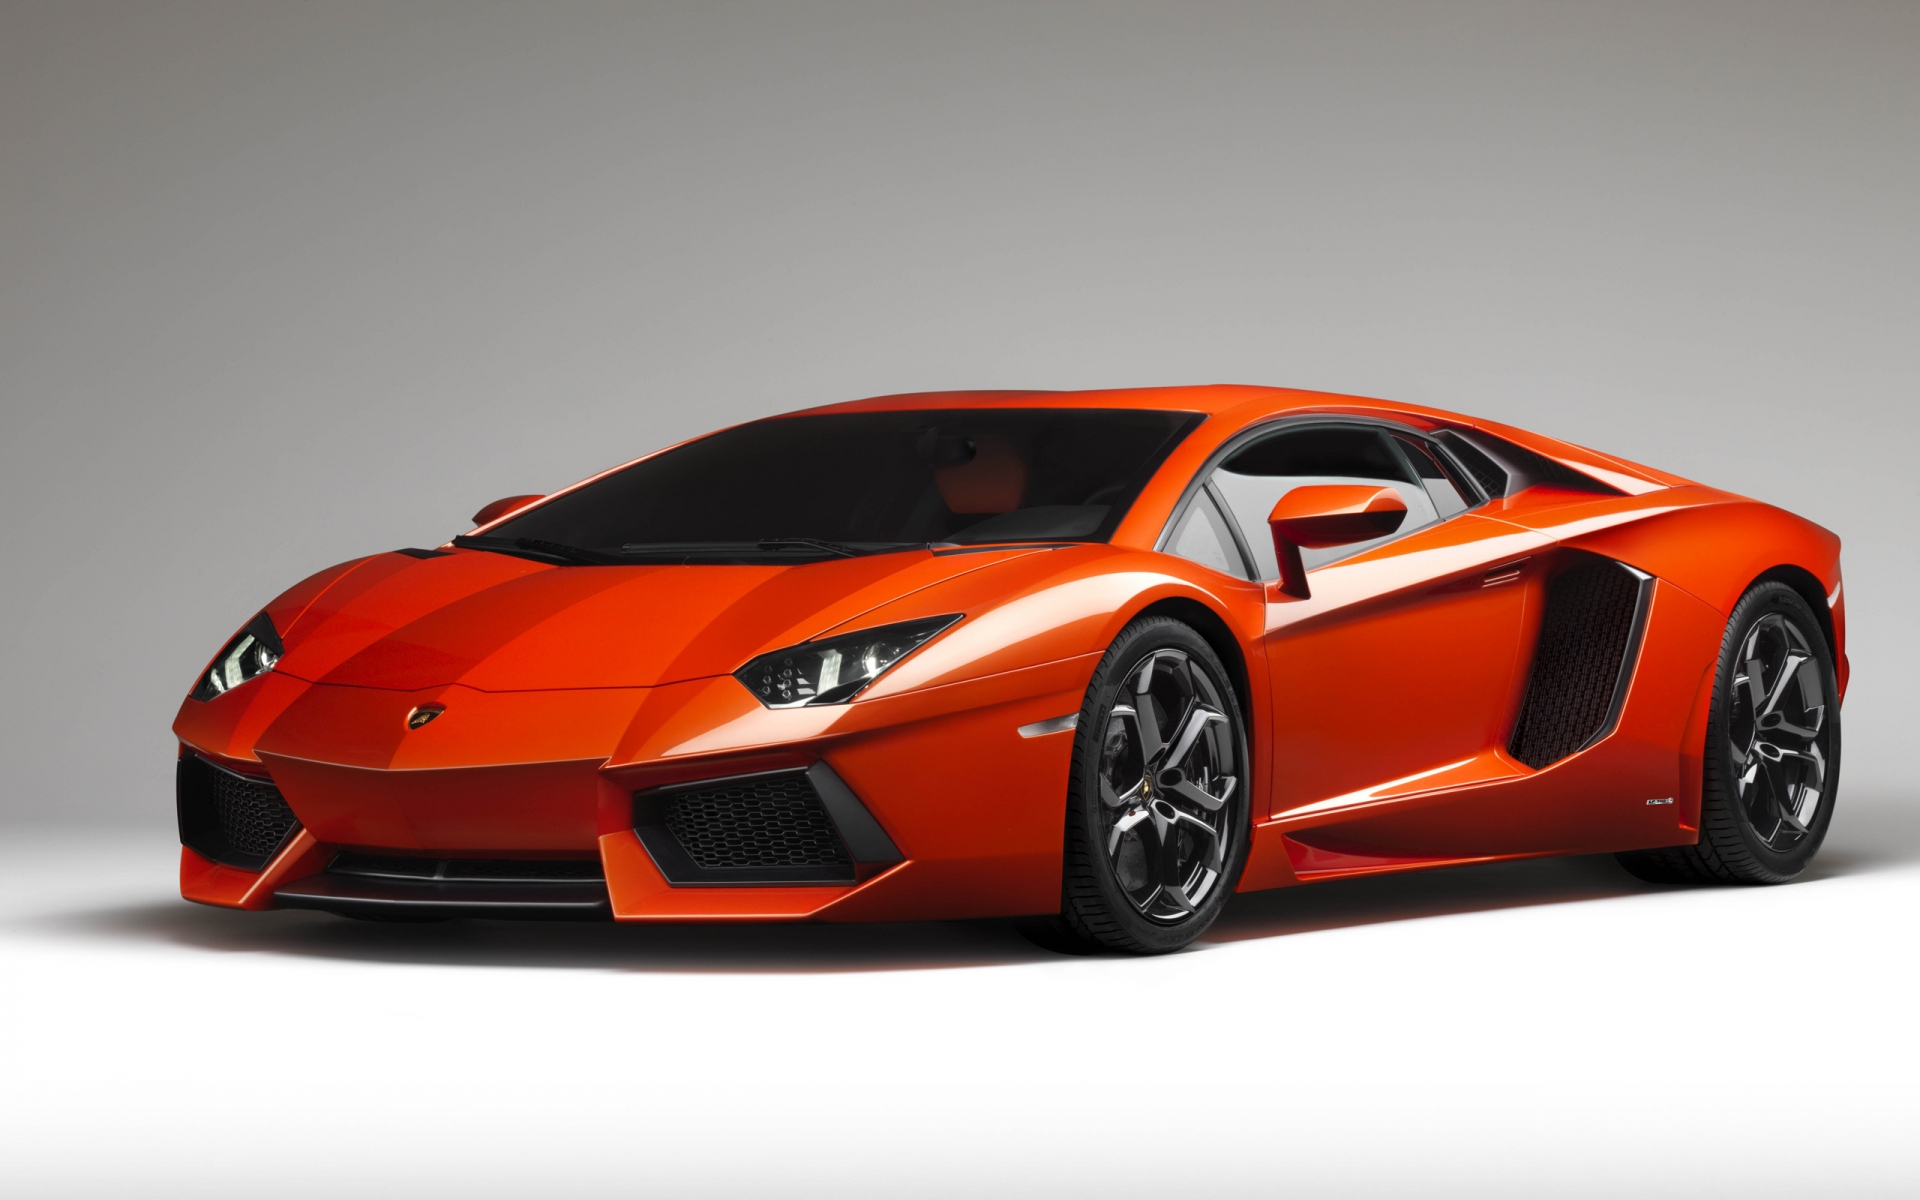 Lamborghini Aventador for 1920 x 1200 widescreen resolution